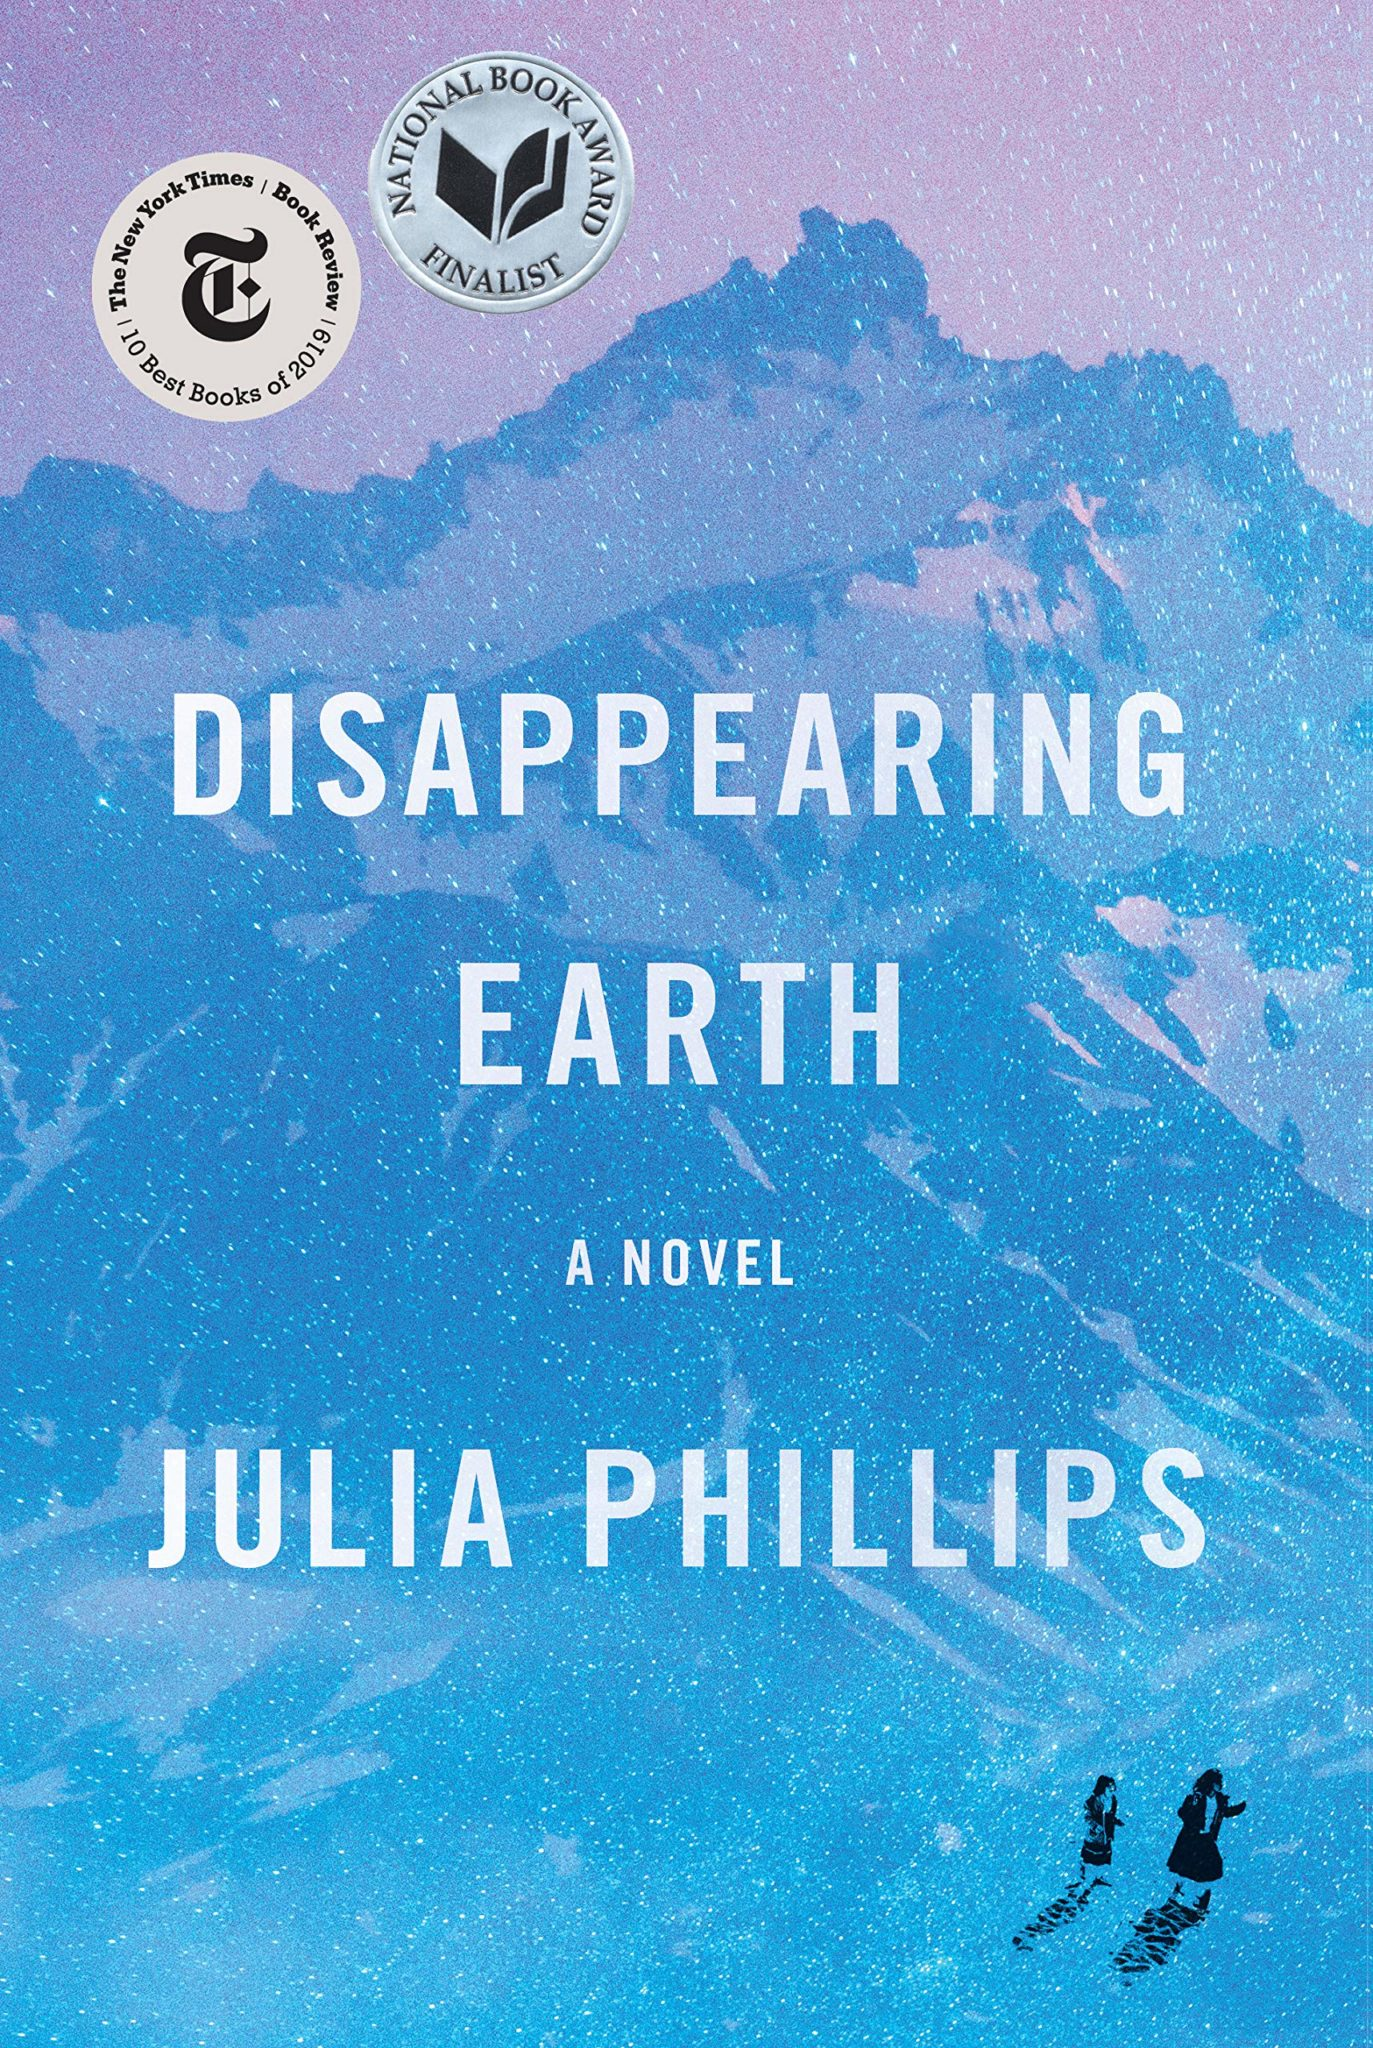 Books I Read in May, June, and July 2020: Disappearing Earth by Julia Phillips | Rhyme & Reason